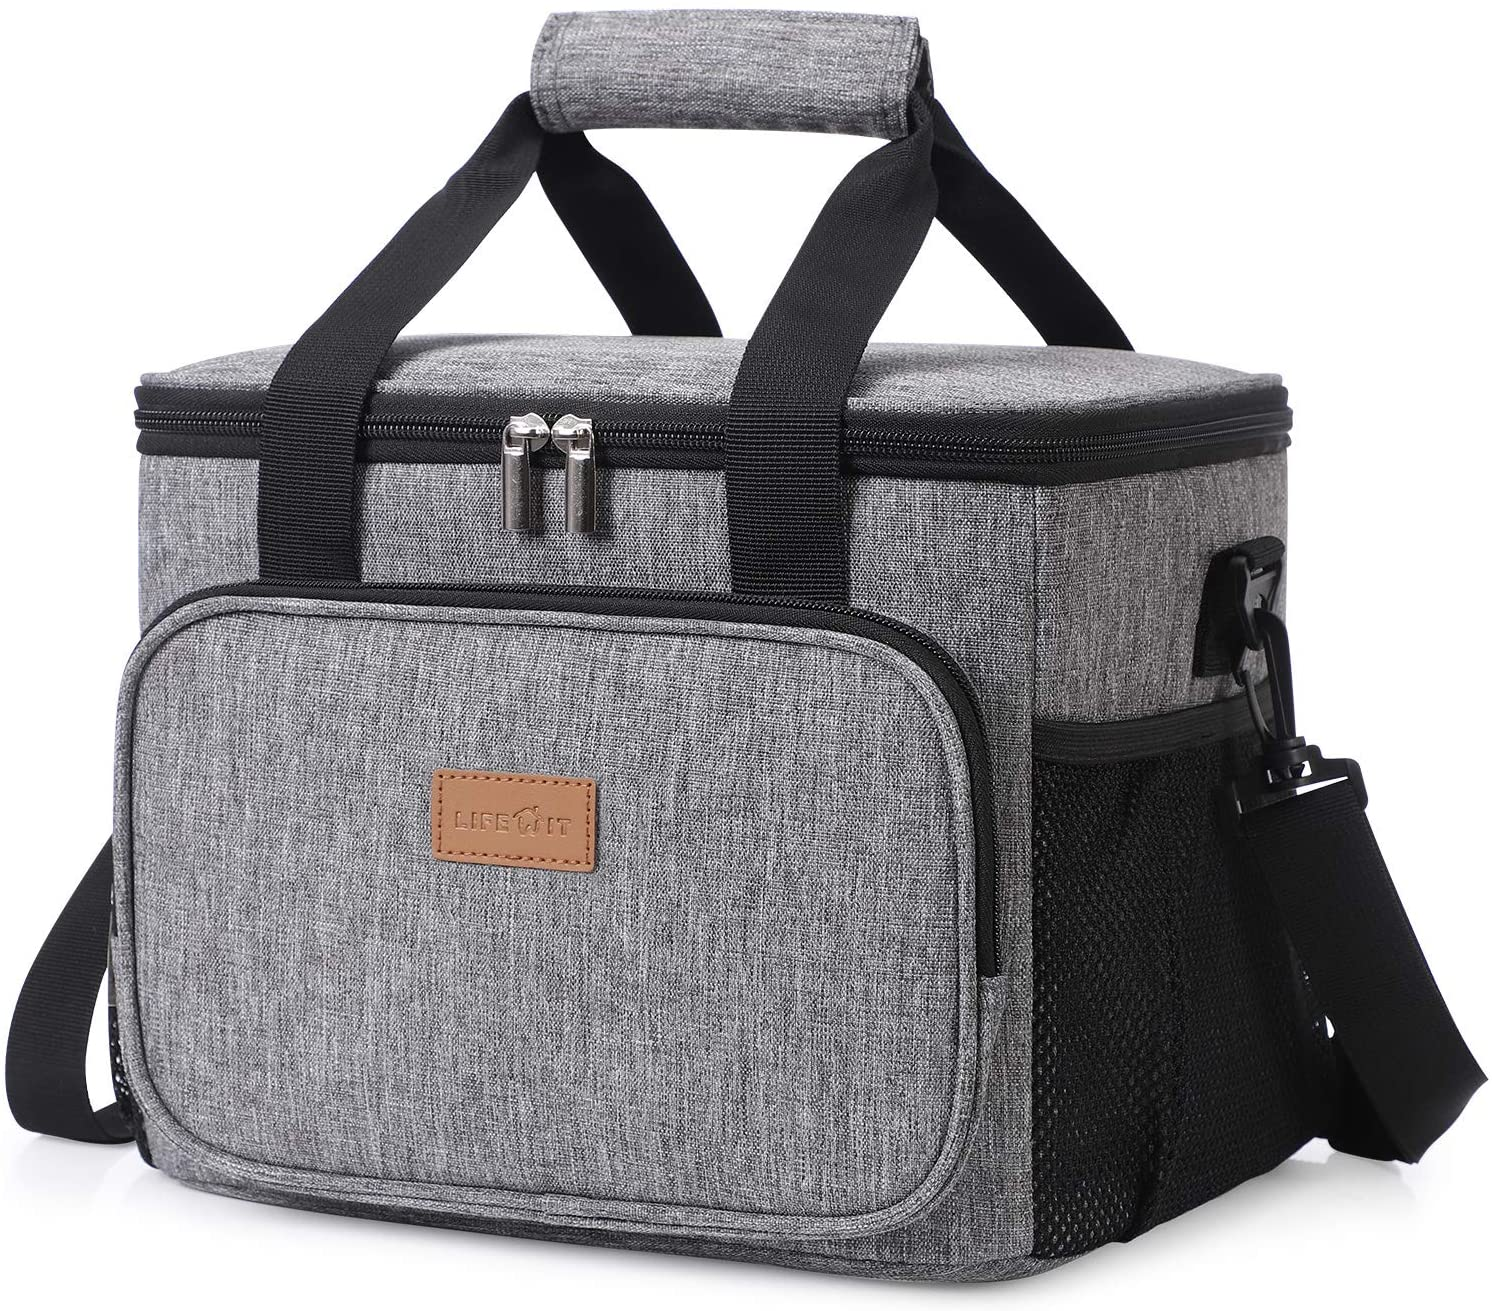 6. Men's Insulated Lunch Bag